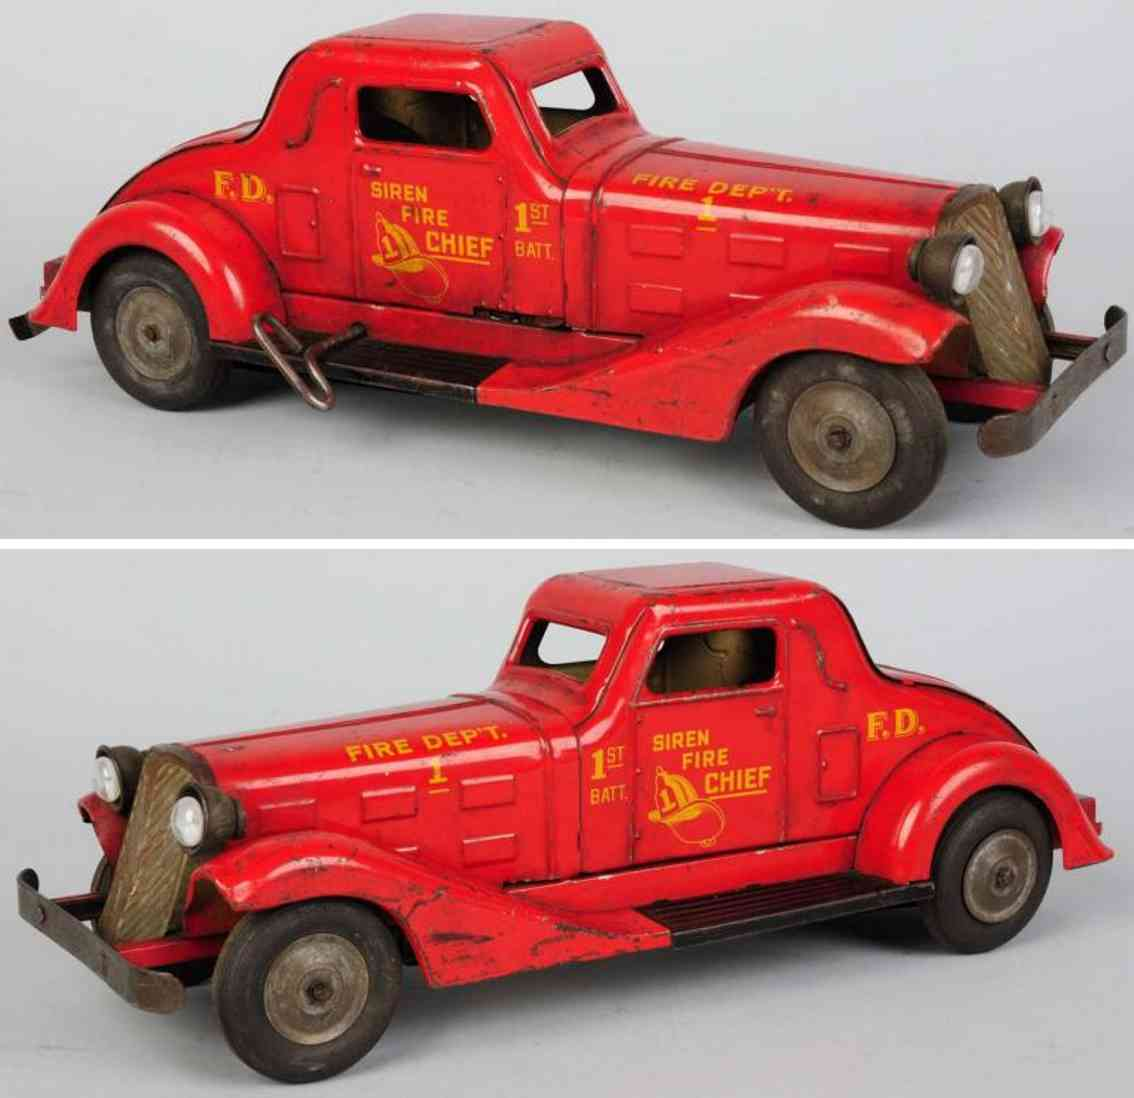 marx louis tin toy pressed steel siren fire chief car with wind-up mechanism